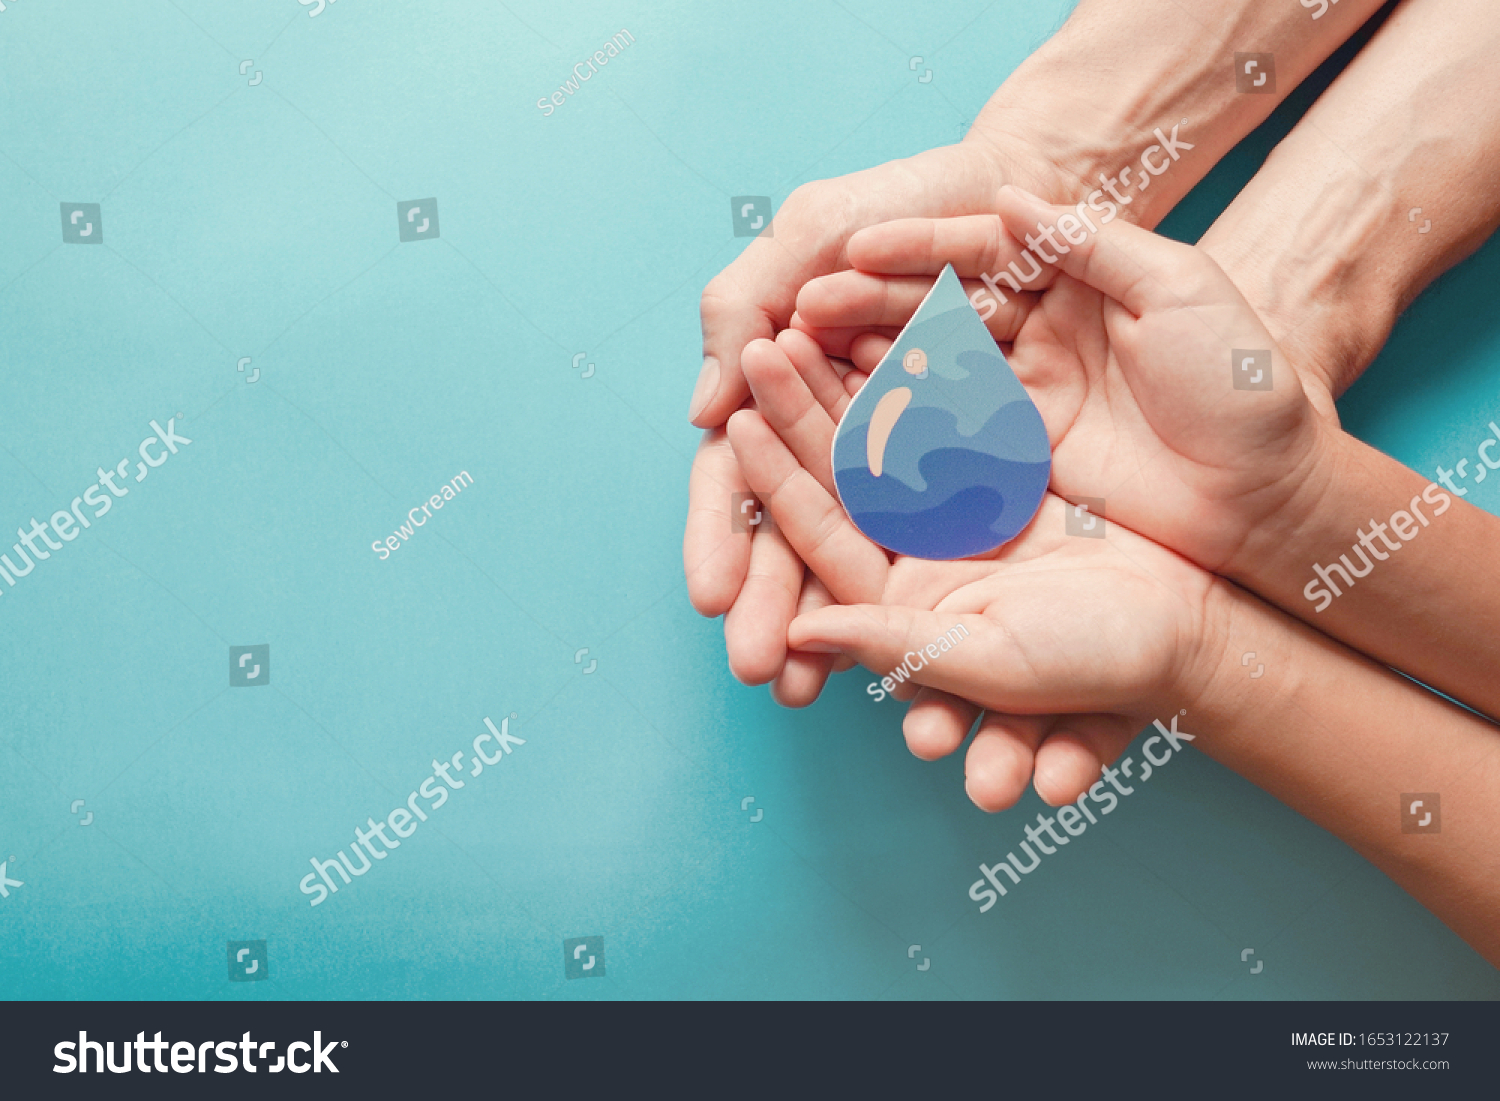 Hands holding clean water drop,world water day,hand sanitizer and hygiene, vaccine for covid-19 pandemic, family washing hands, CSR, save water, clean renewable energy, flood disaster relief concept  #1653122137